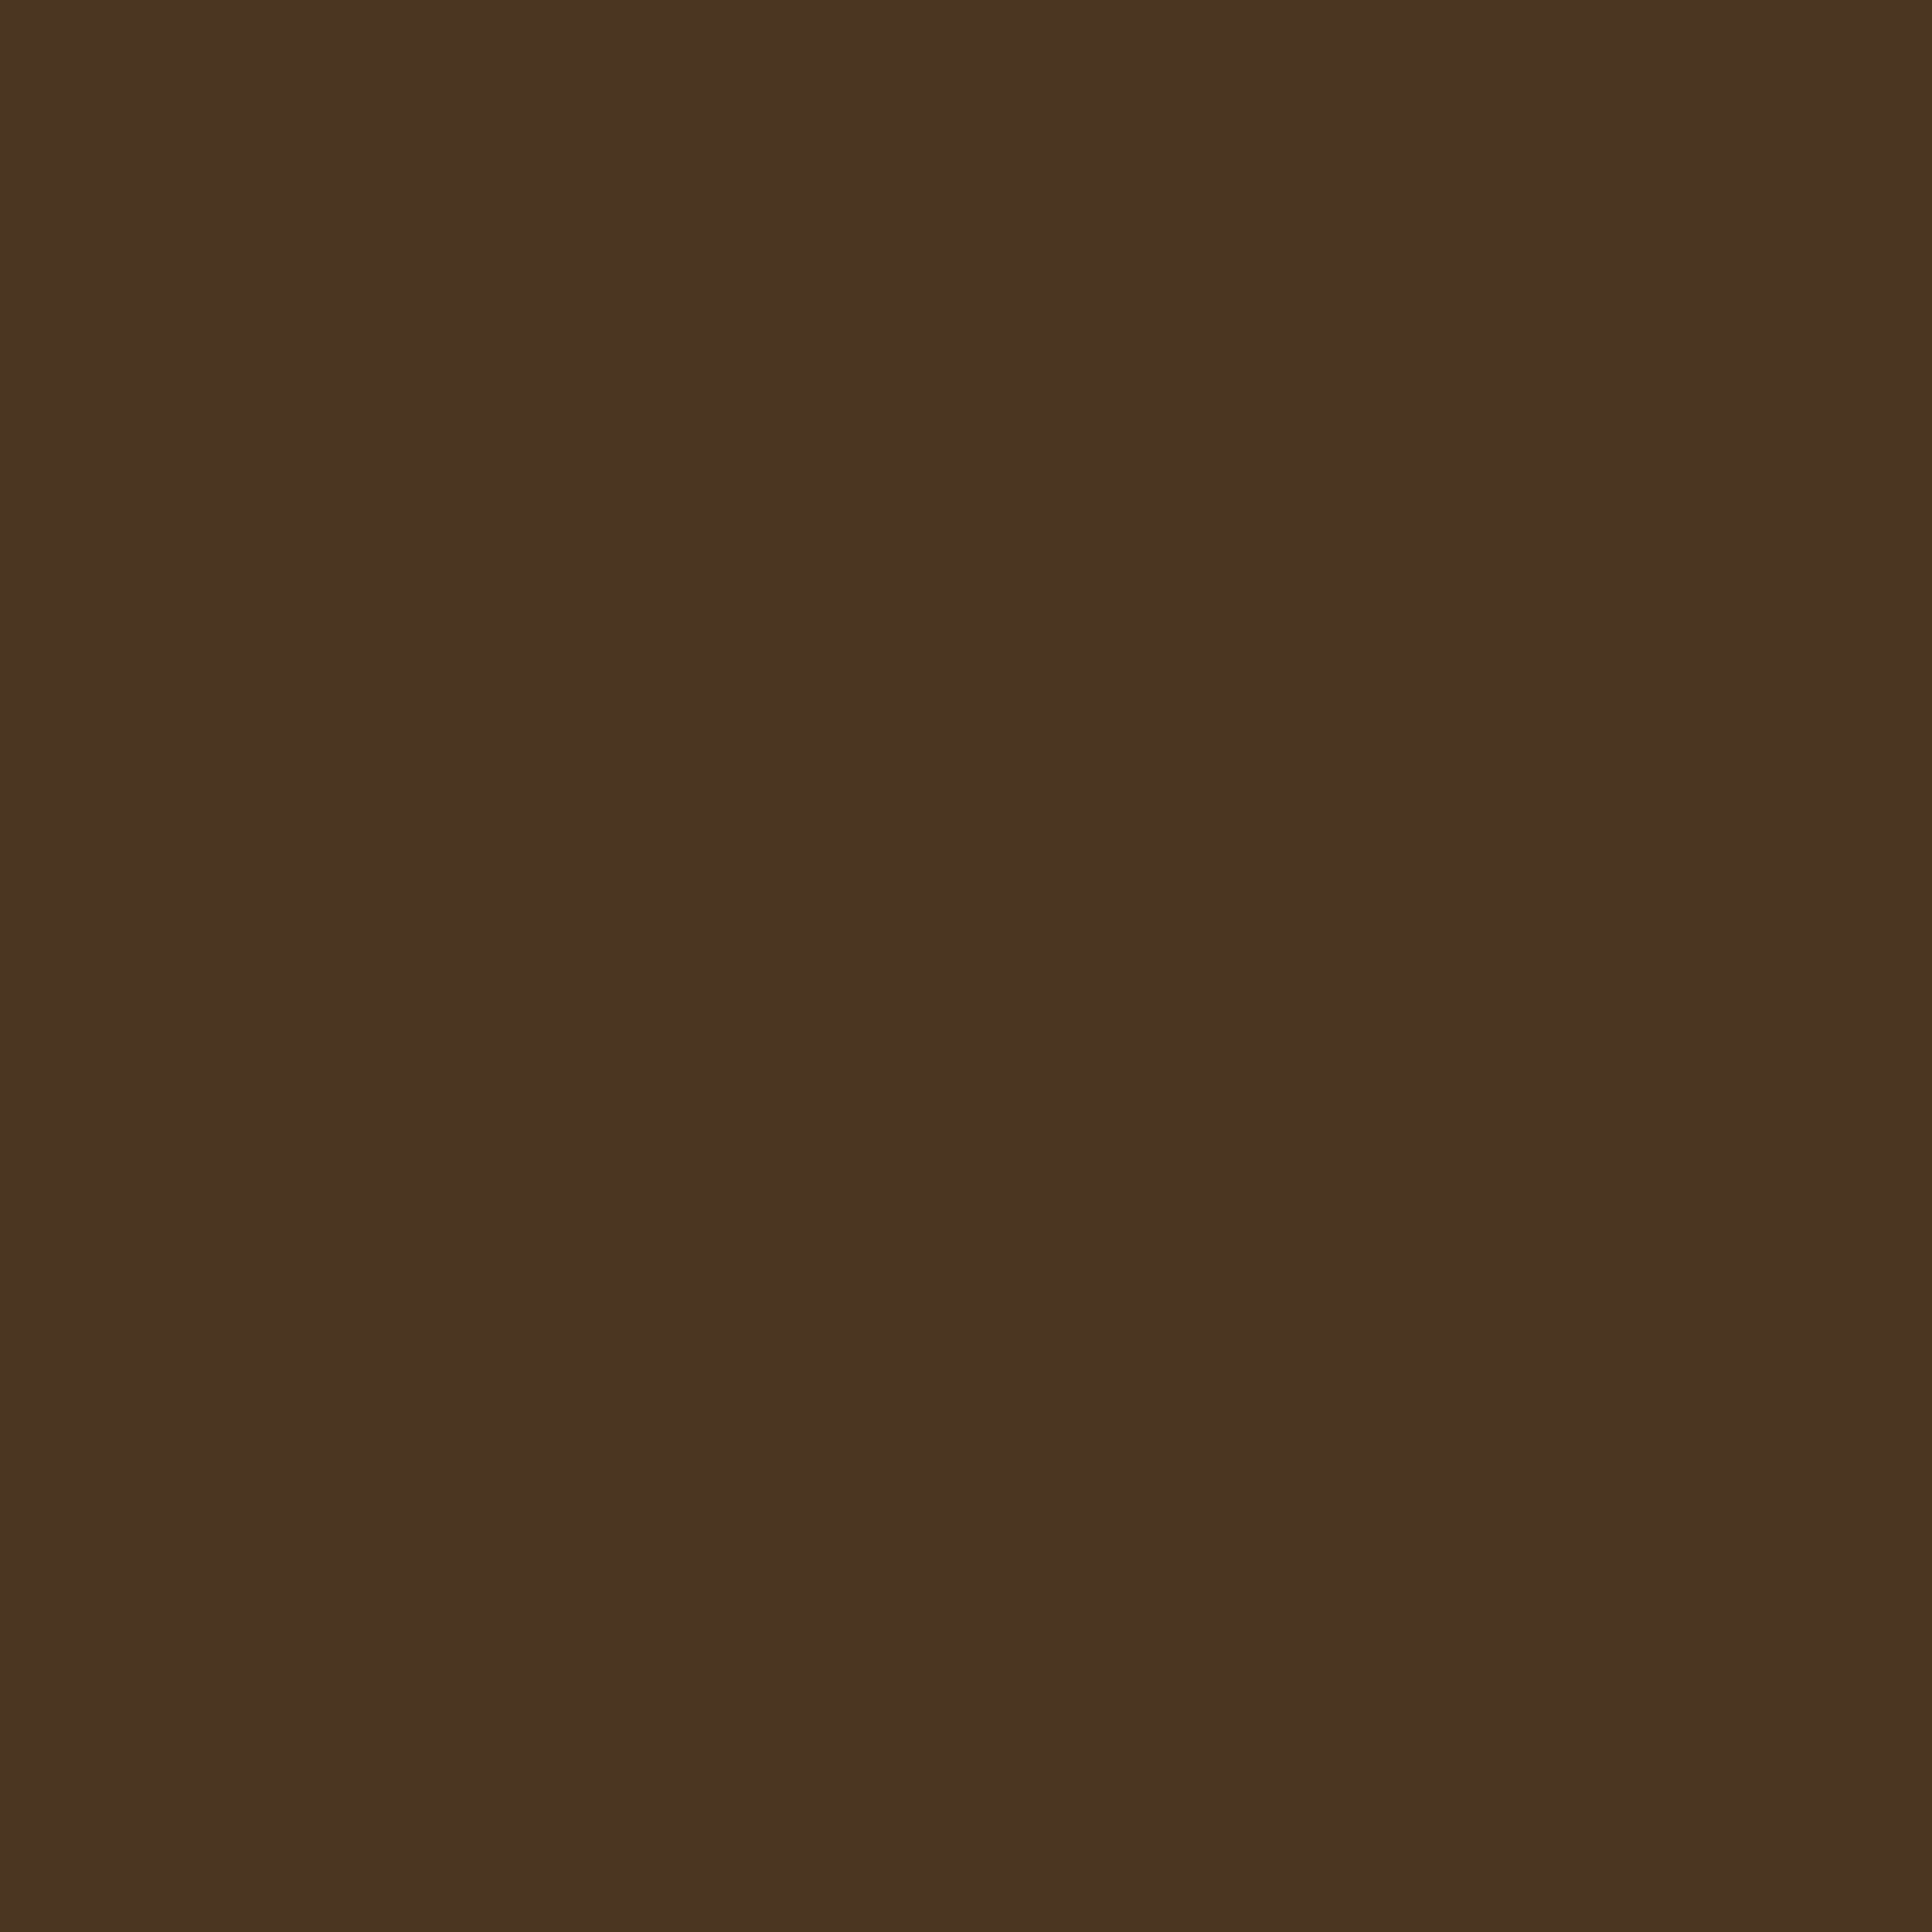 2732x2732 Cafe Noir Solid Color Background